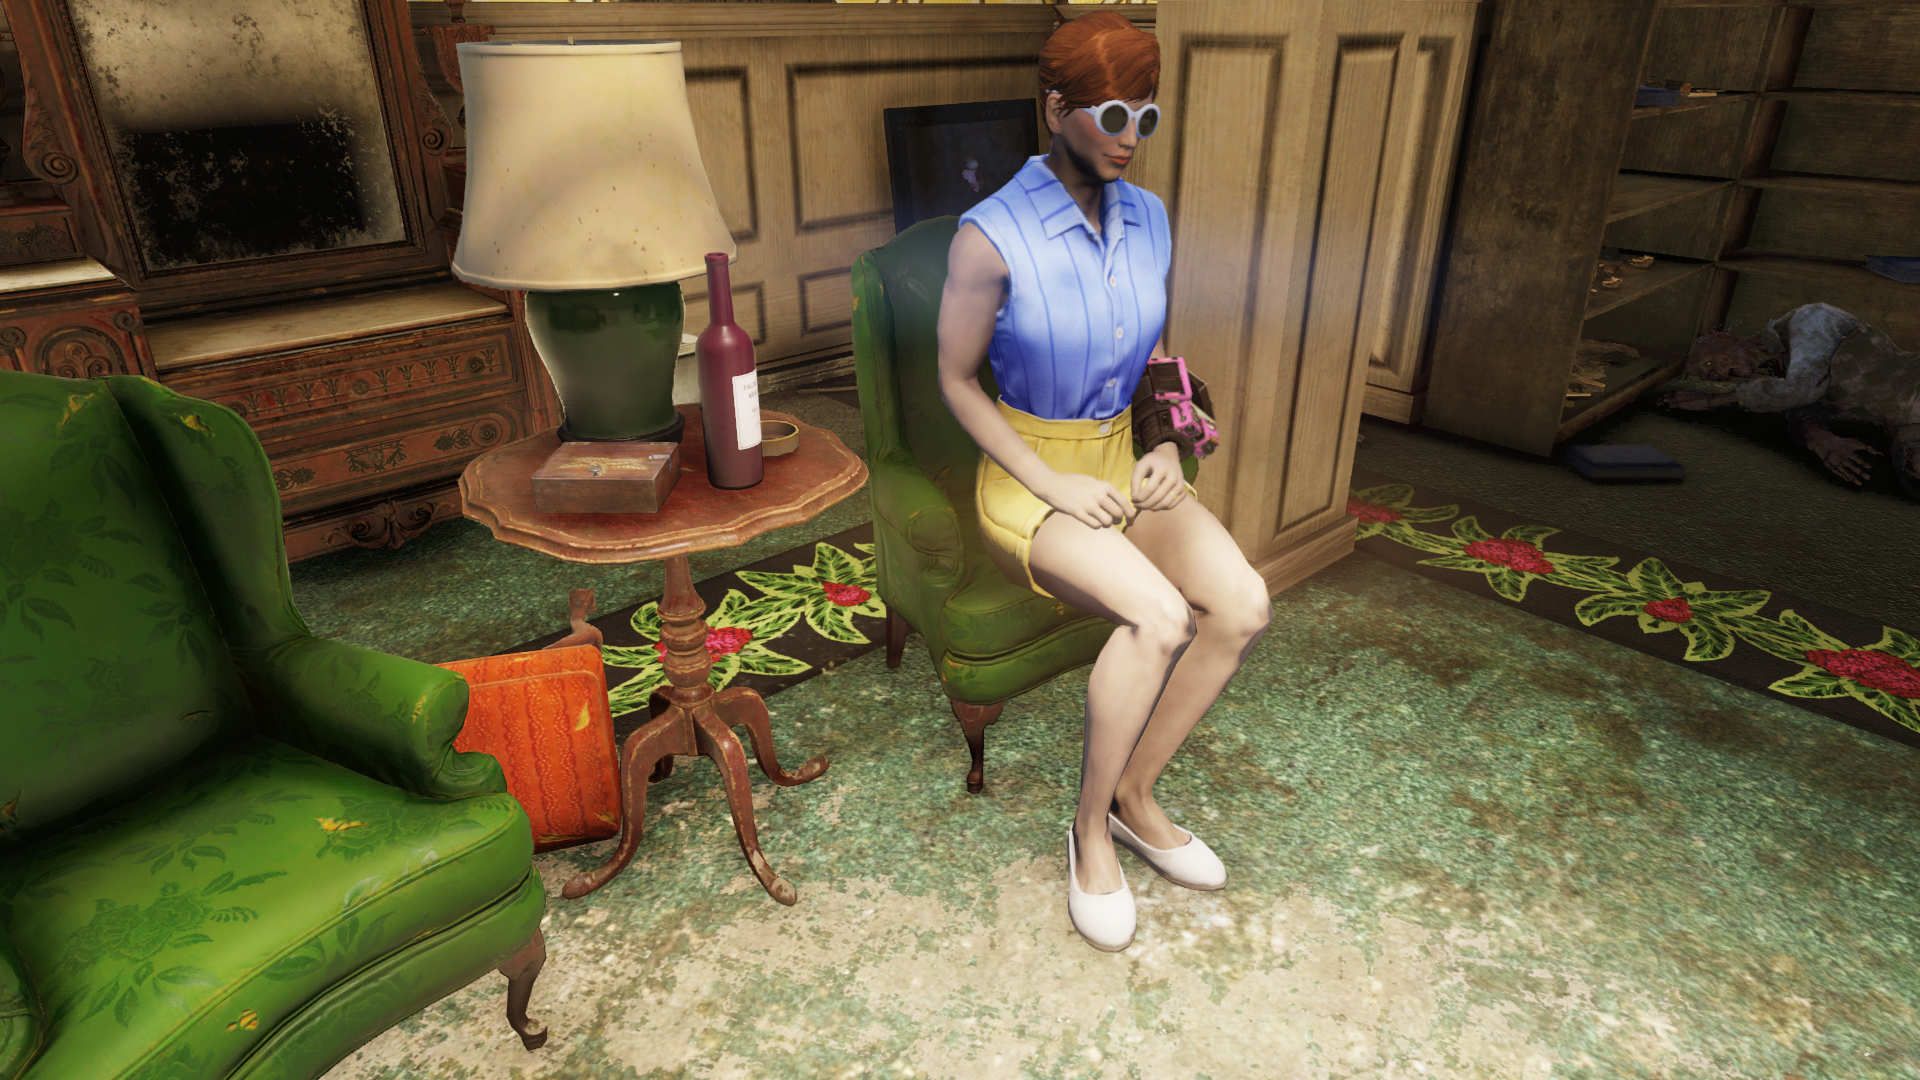 I'm a Fallout 76 wine mom and I'm gonna cut you